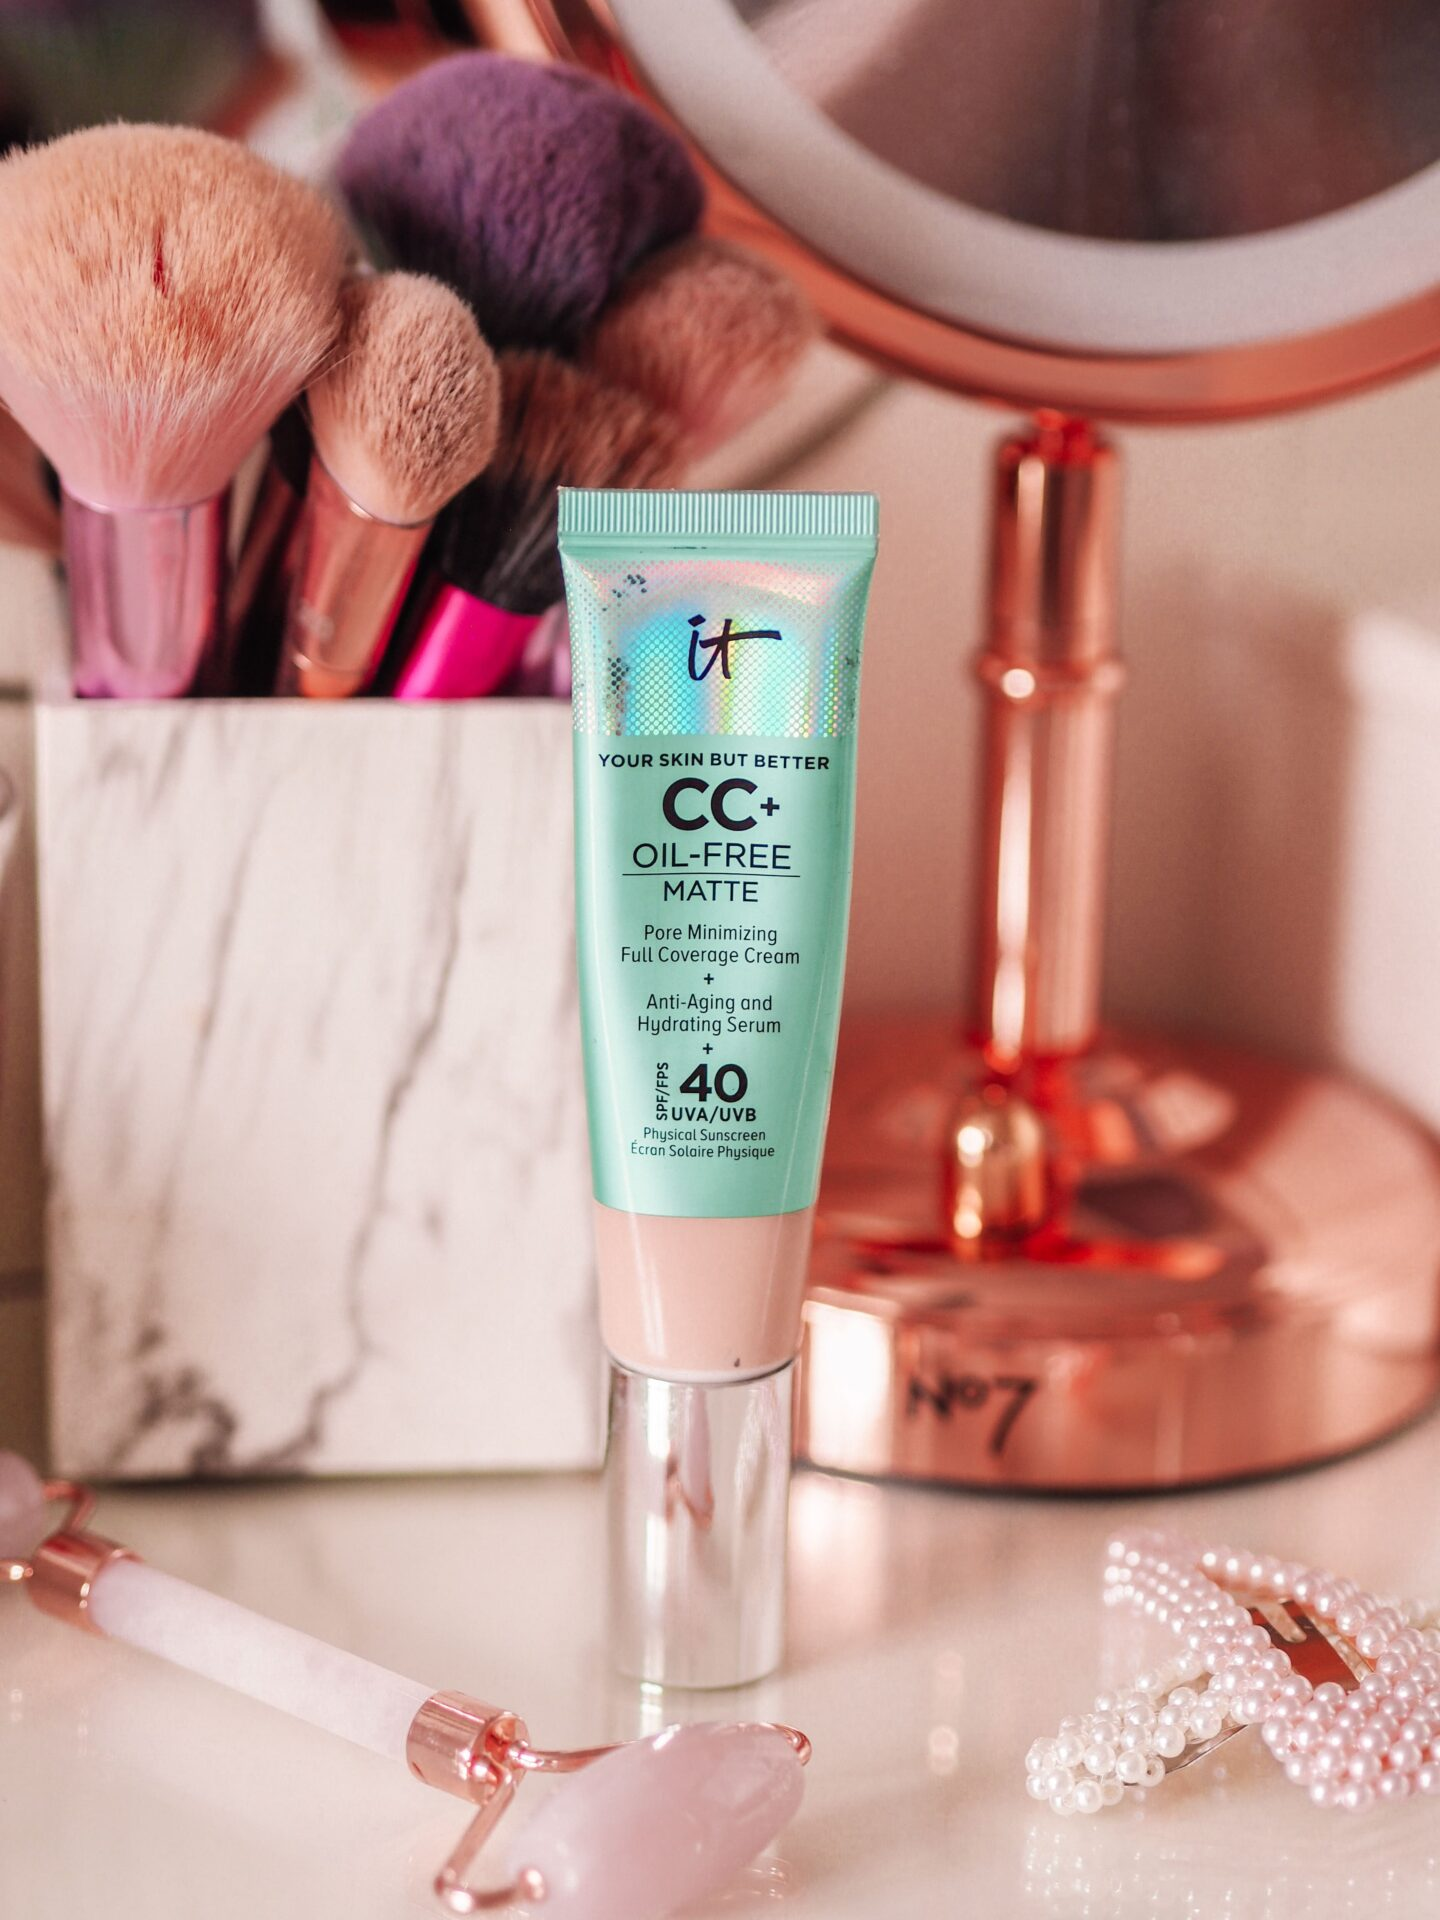 IT Cosmetics Your Skin But Better CC+ Cream Oil free matte Review